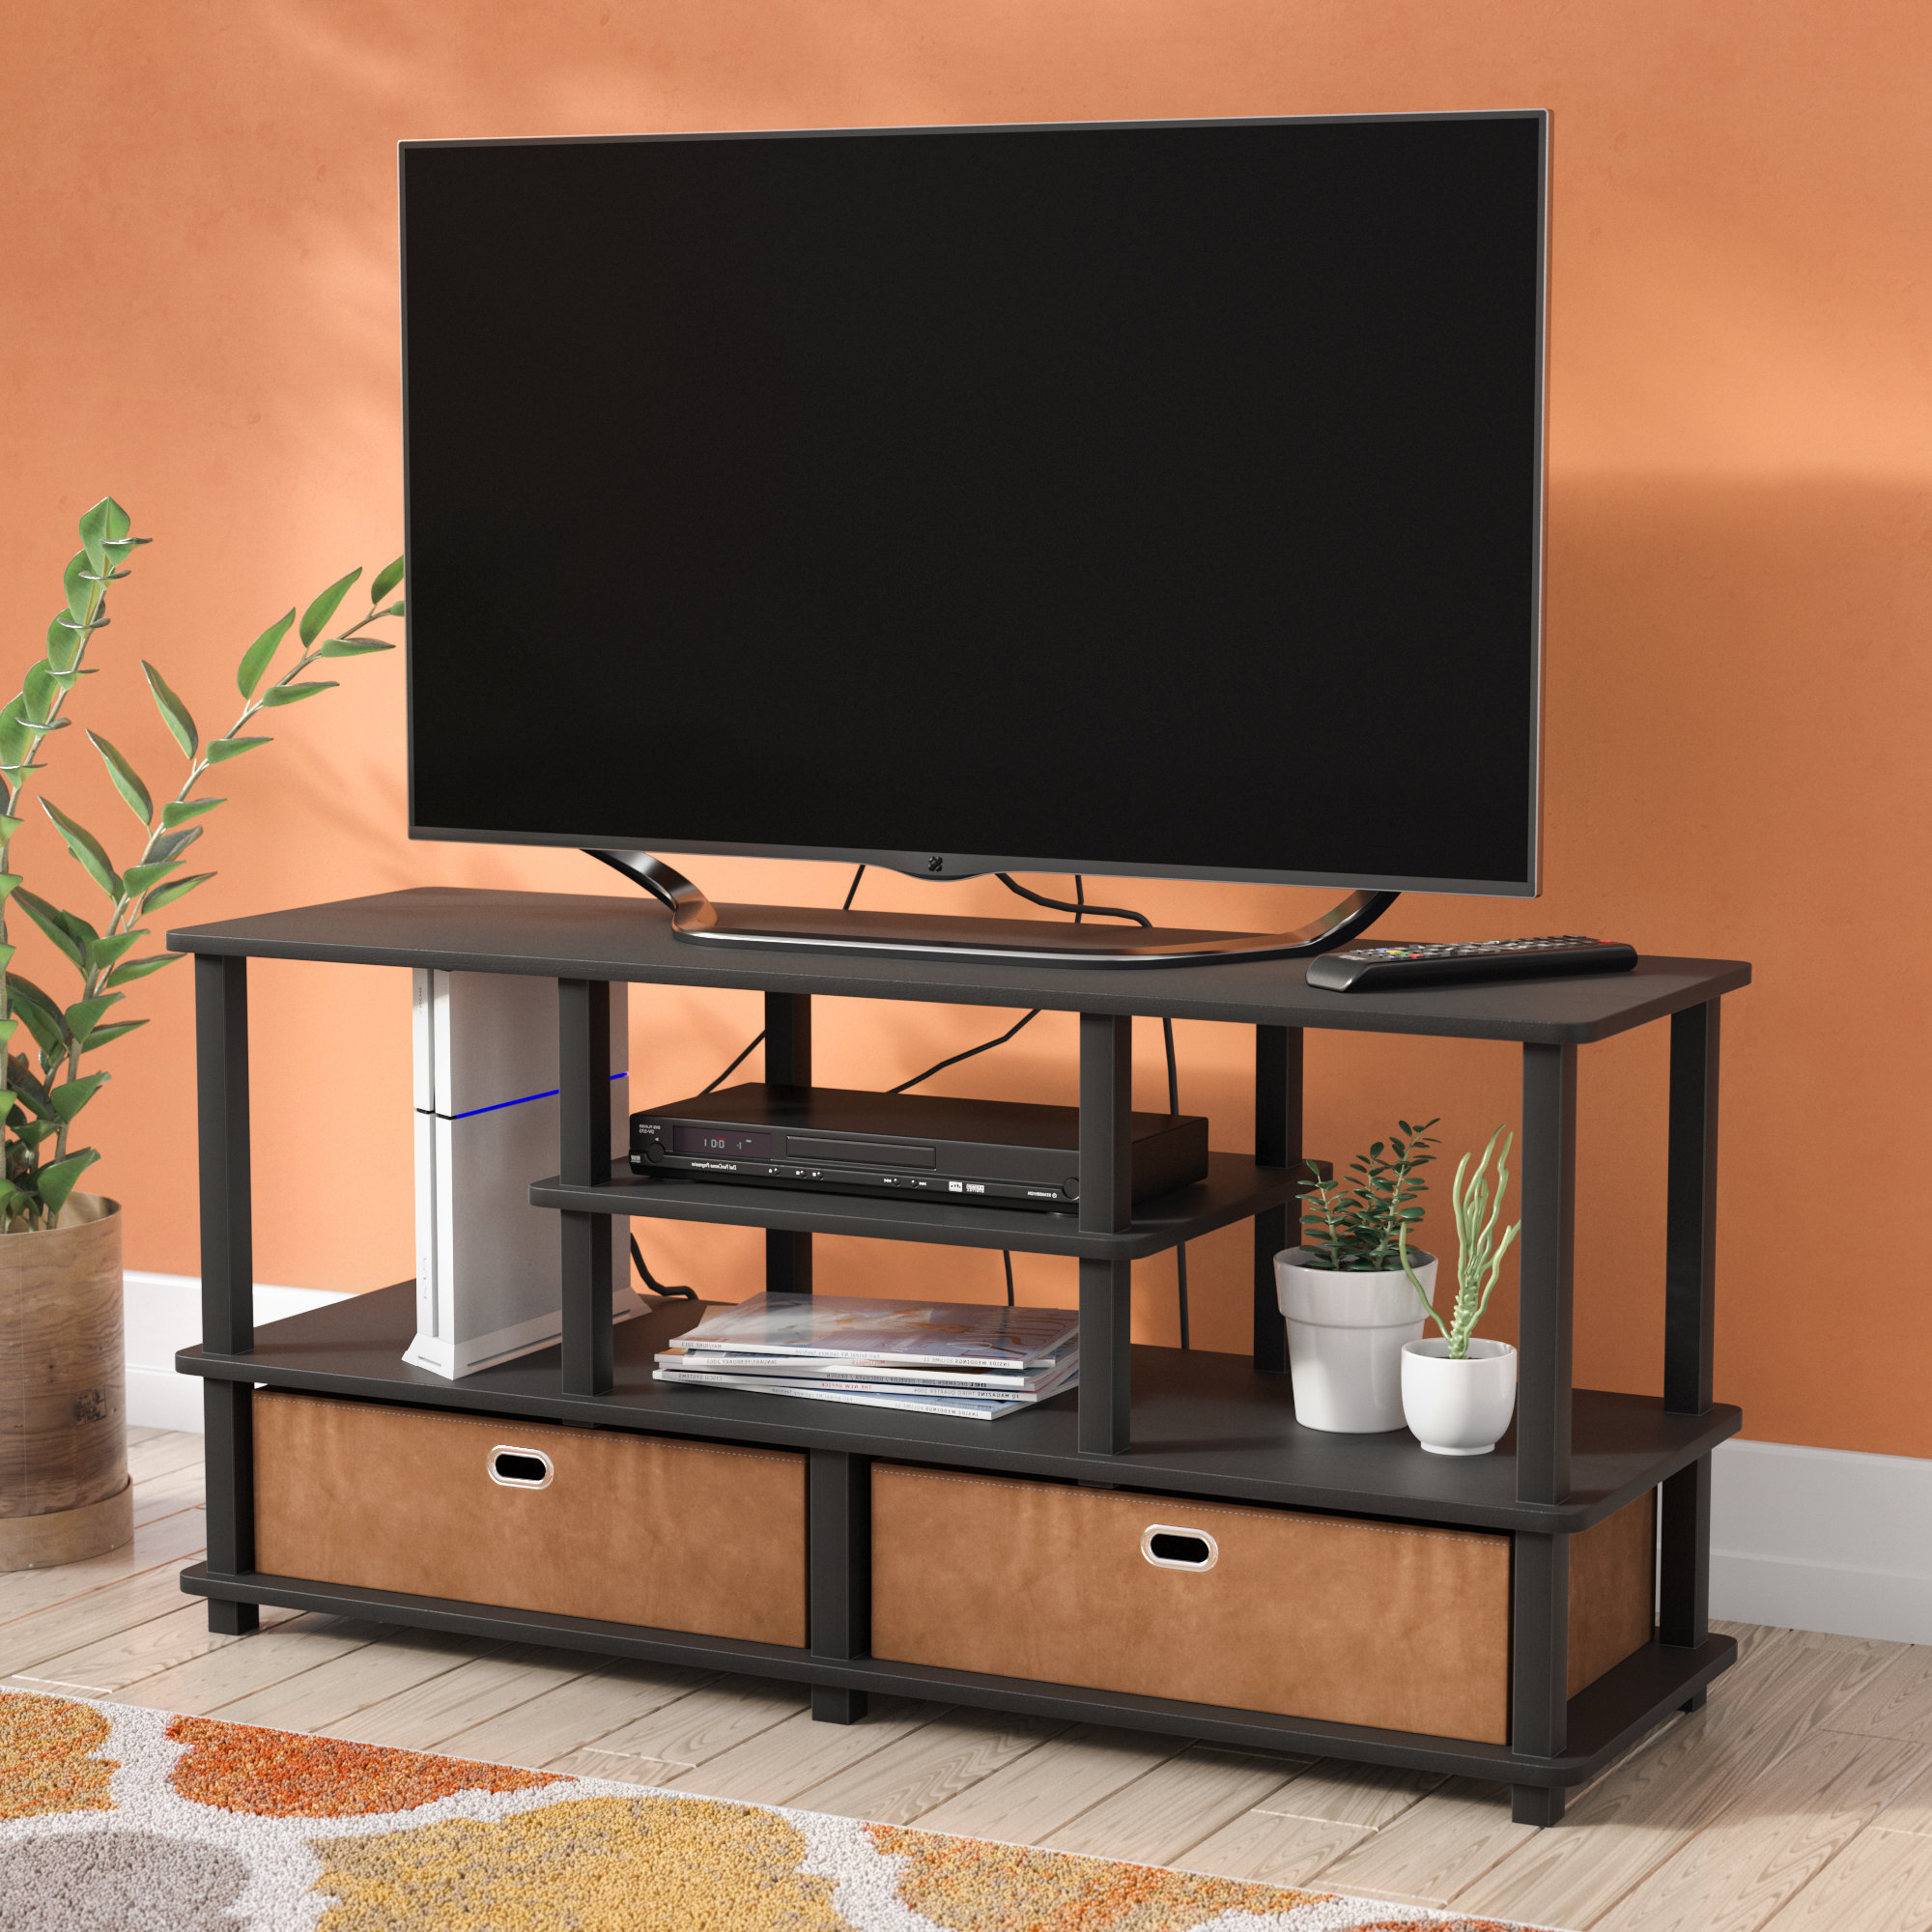 """Zipcode Design Crow Tv Stand For Tvs Up To 50"""" & Reviews 